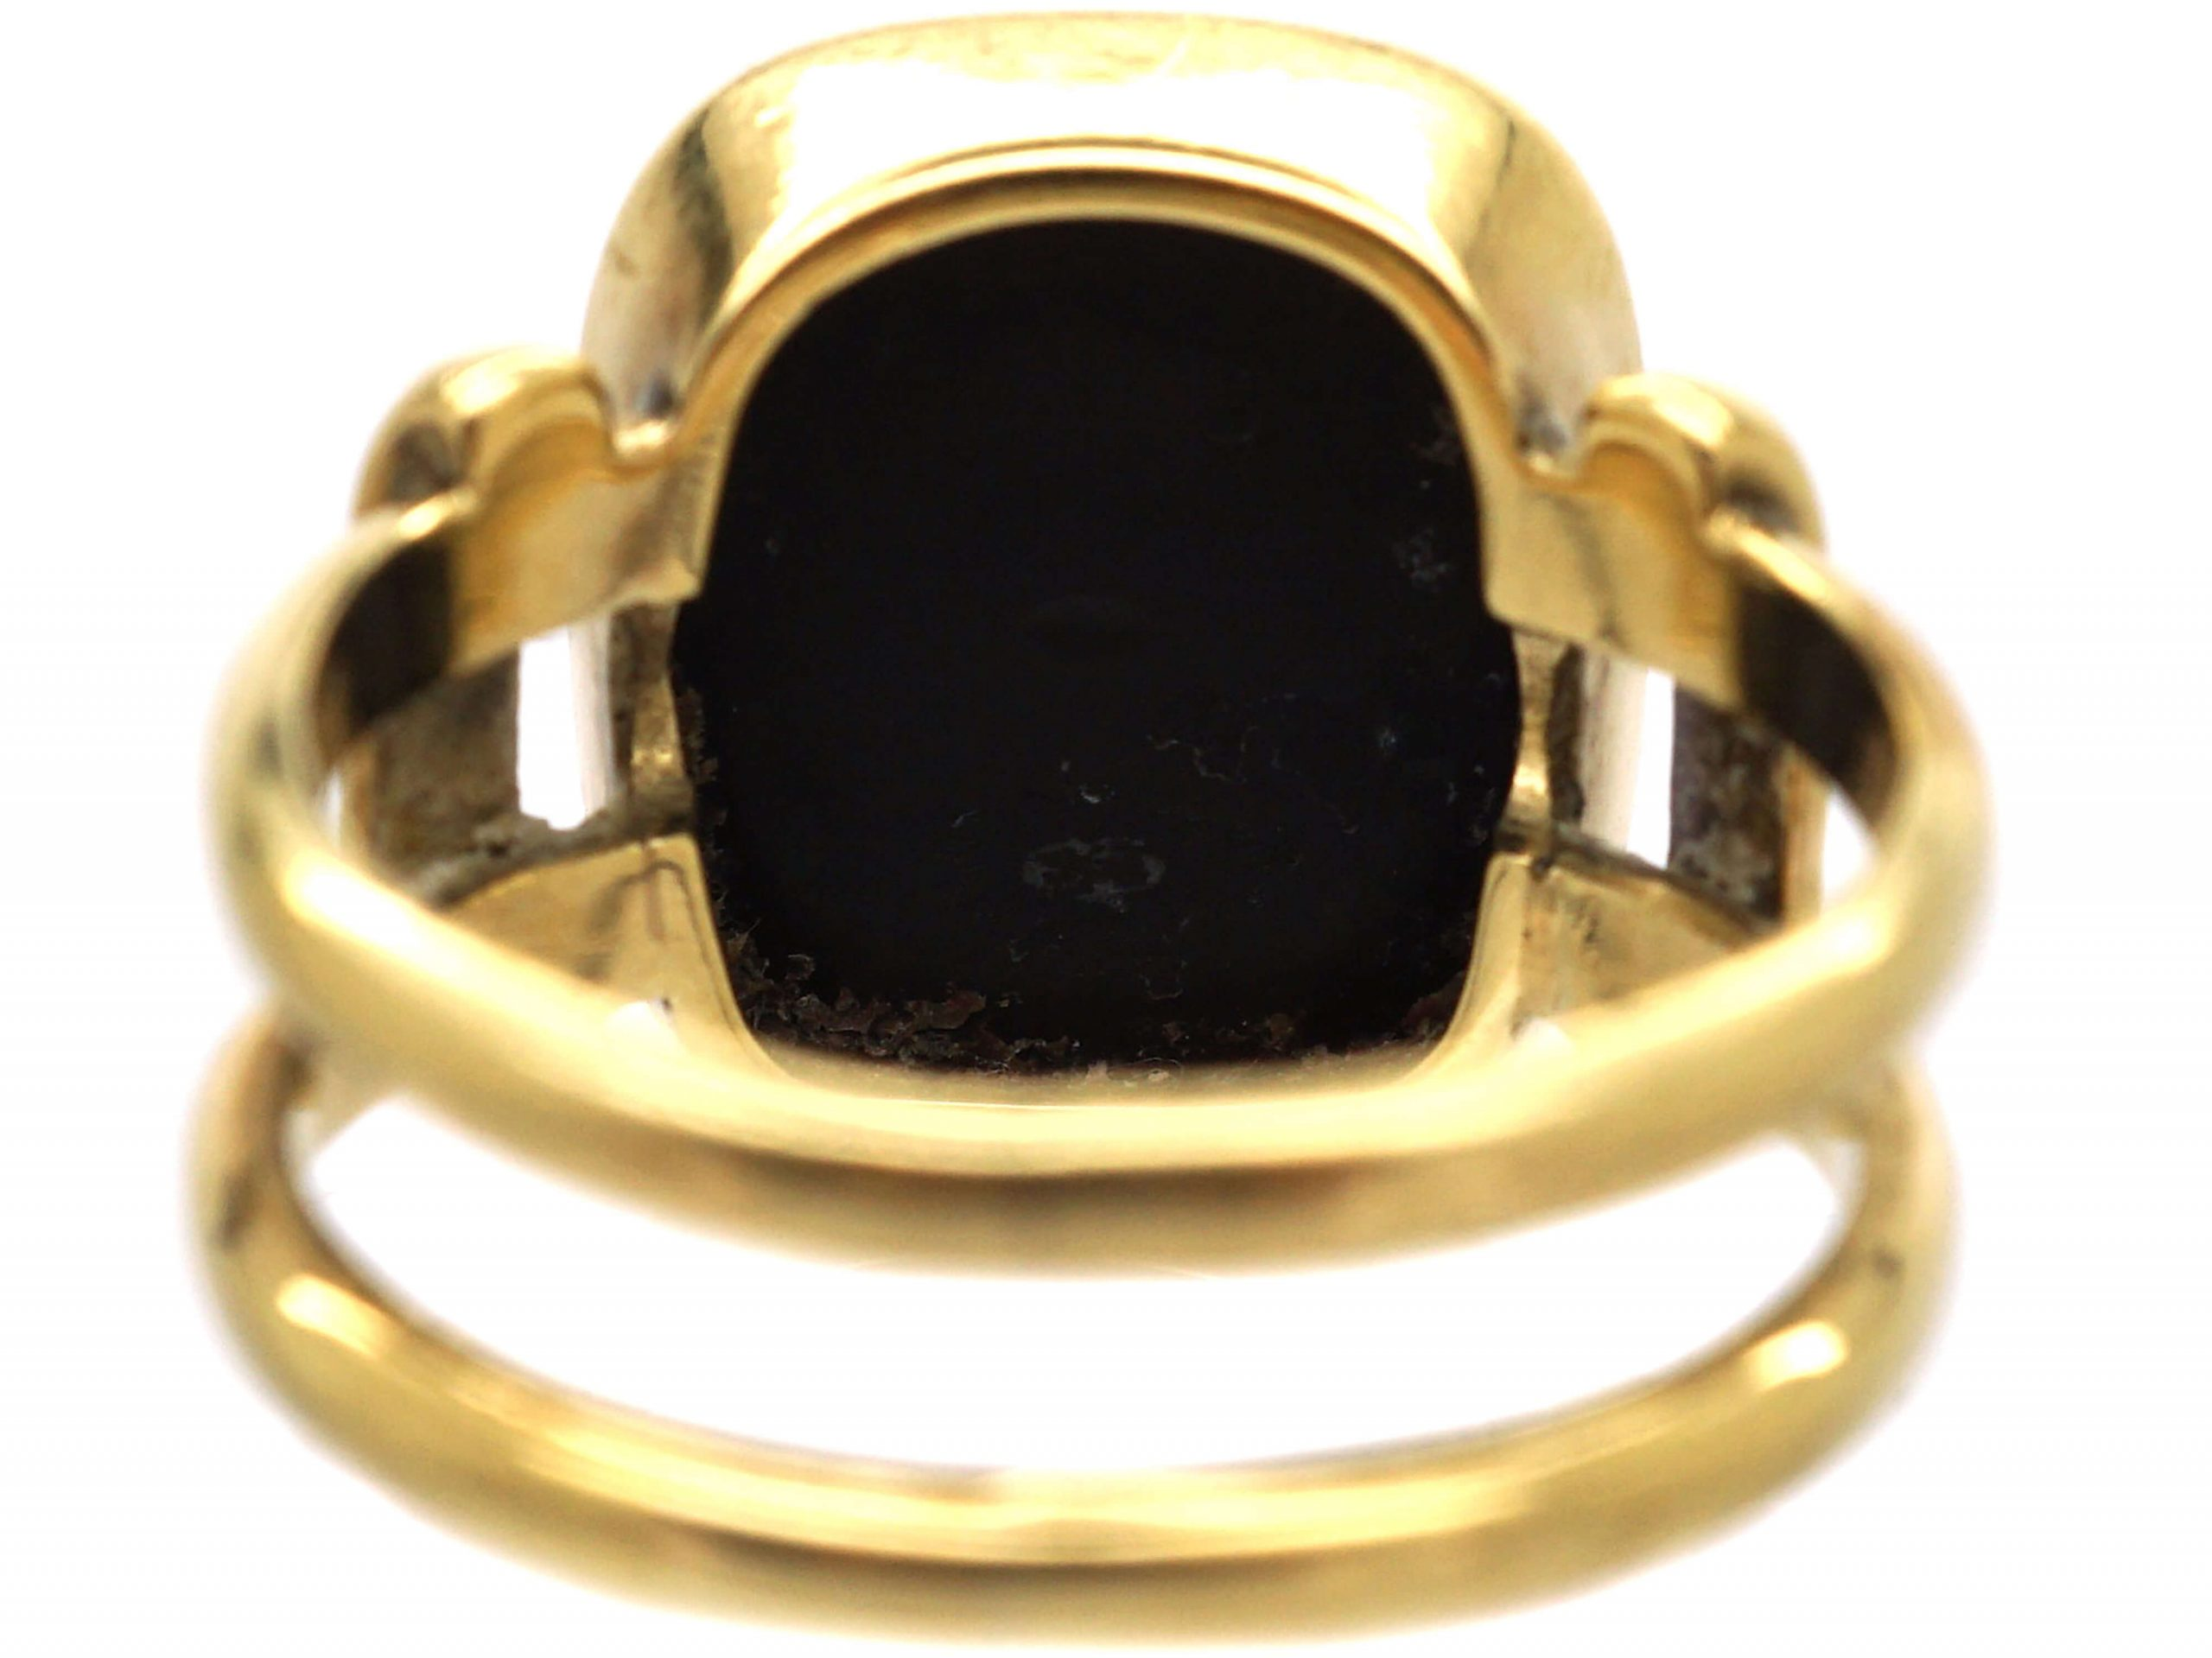 Victorian 18ct Gold Signet Ring with Banded Onyx Intaglio of a Crest